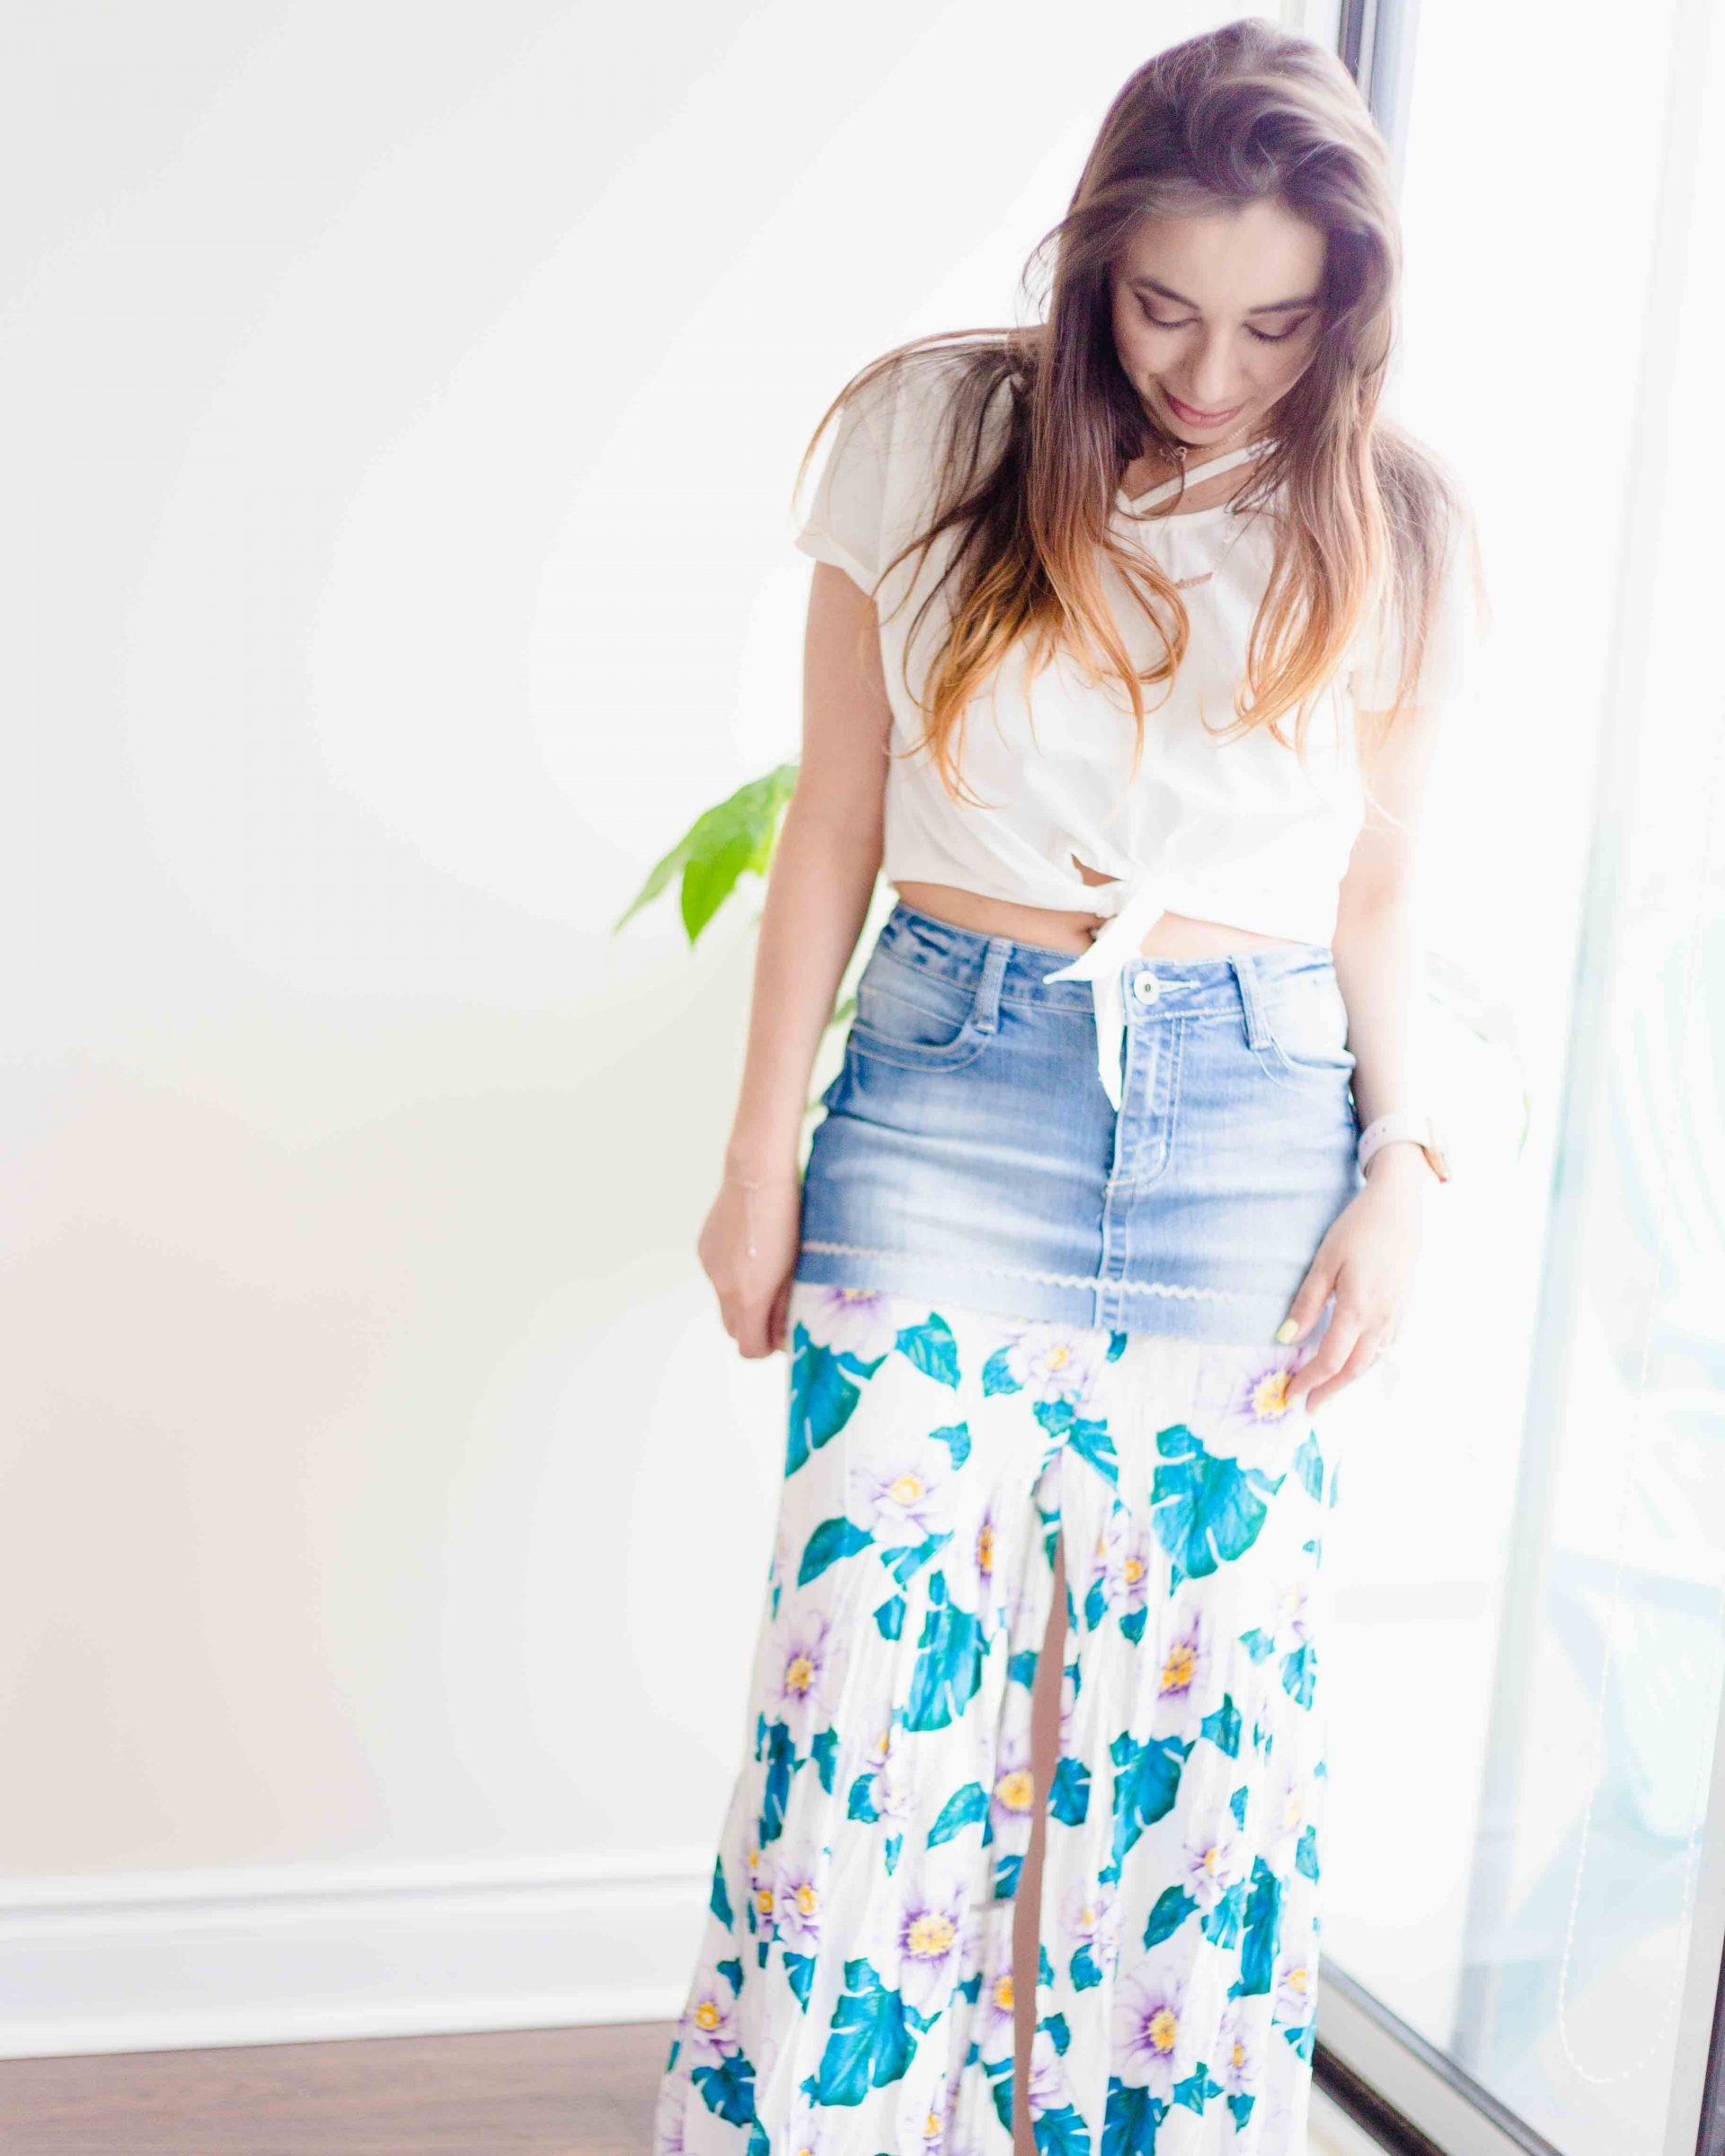 Turn your old jeans skirt into a stylish skirt for spring